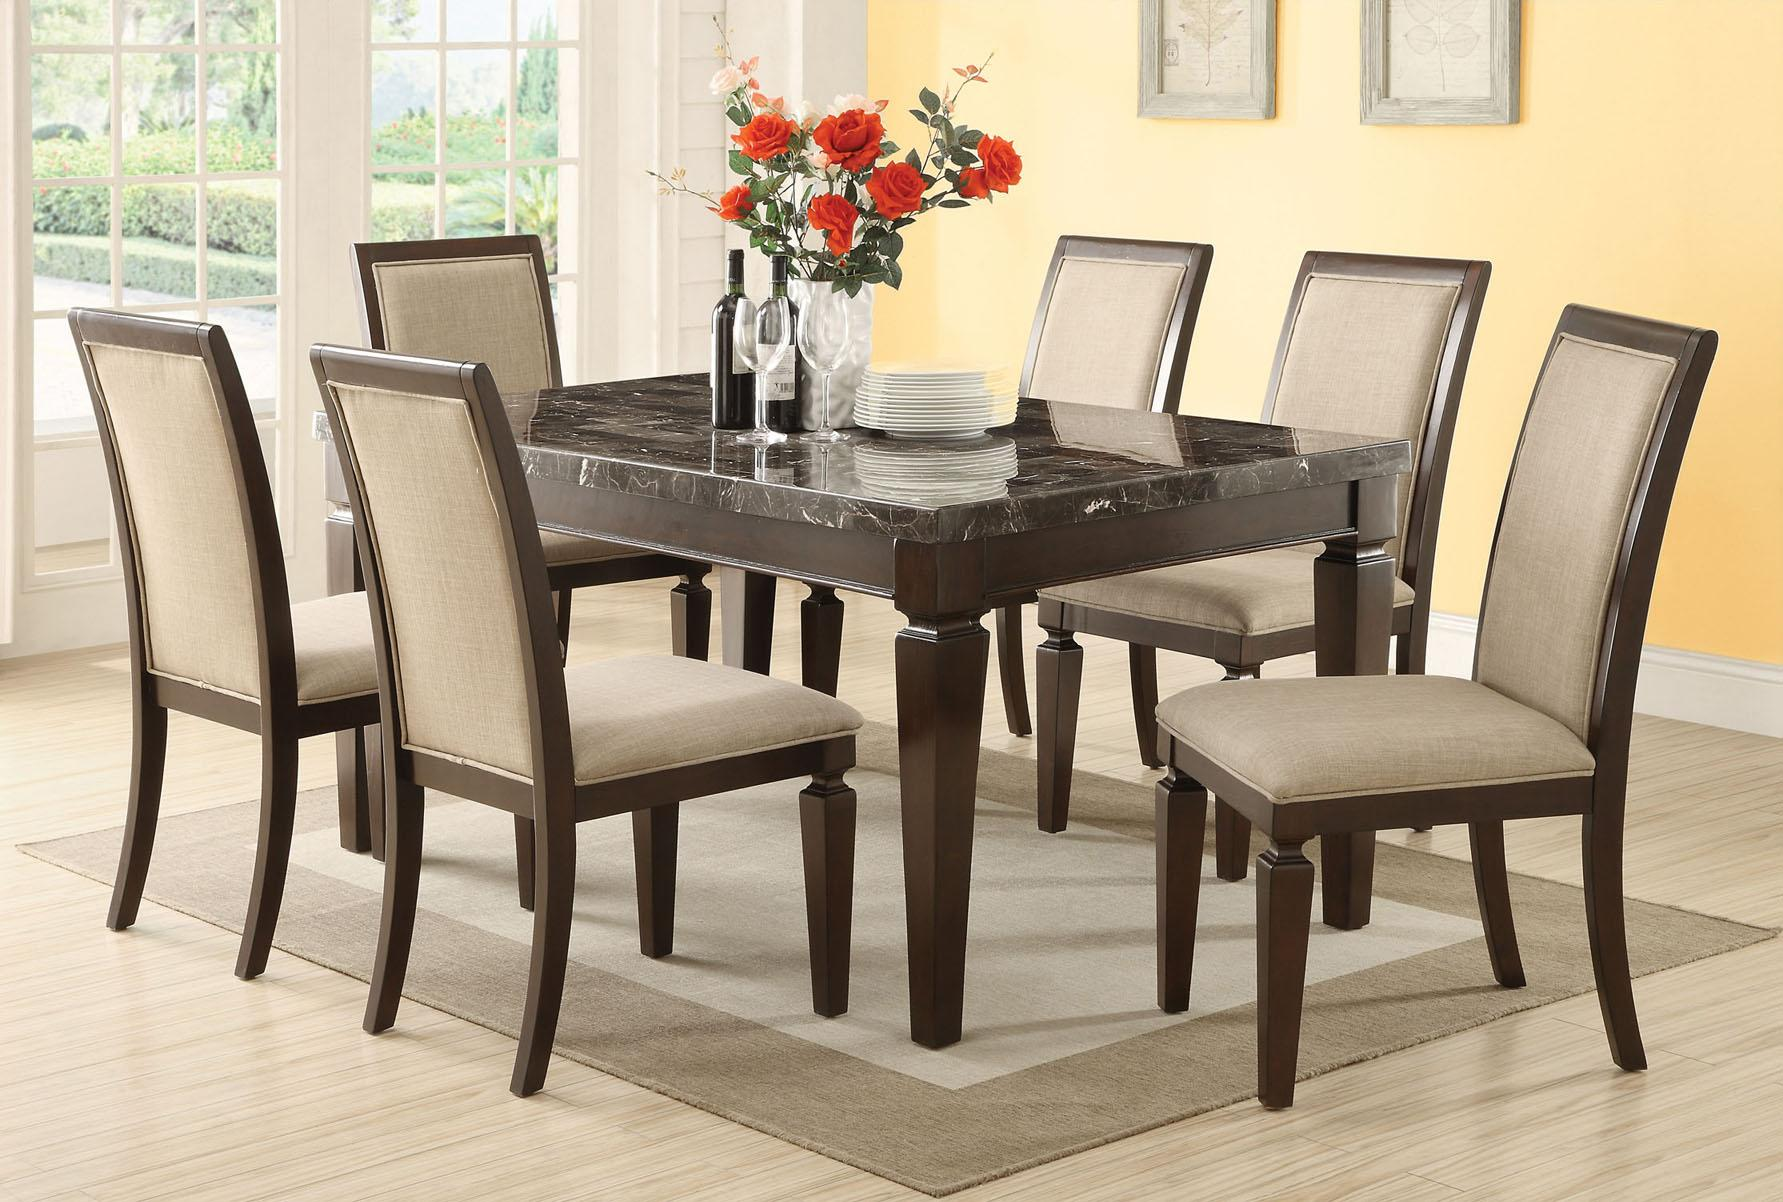 Acme Agatha 7PC Black Marble Top Rectangular Dining Room Set in ...